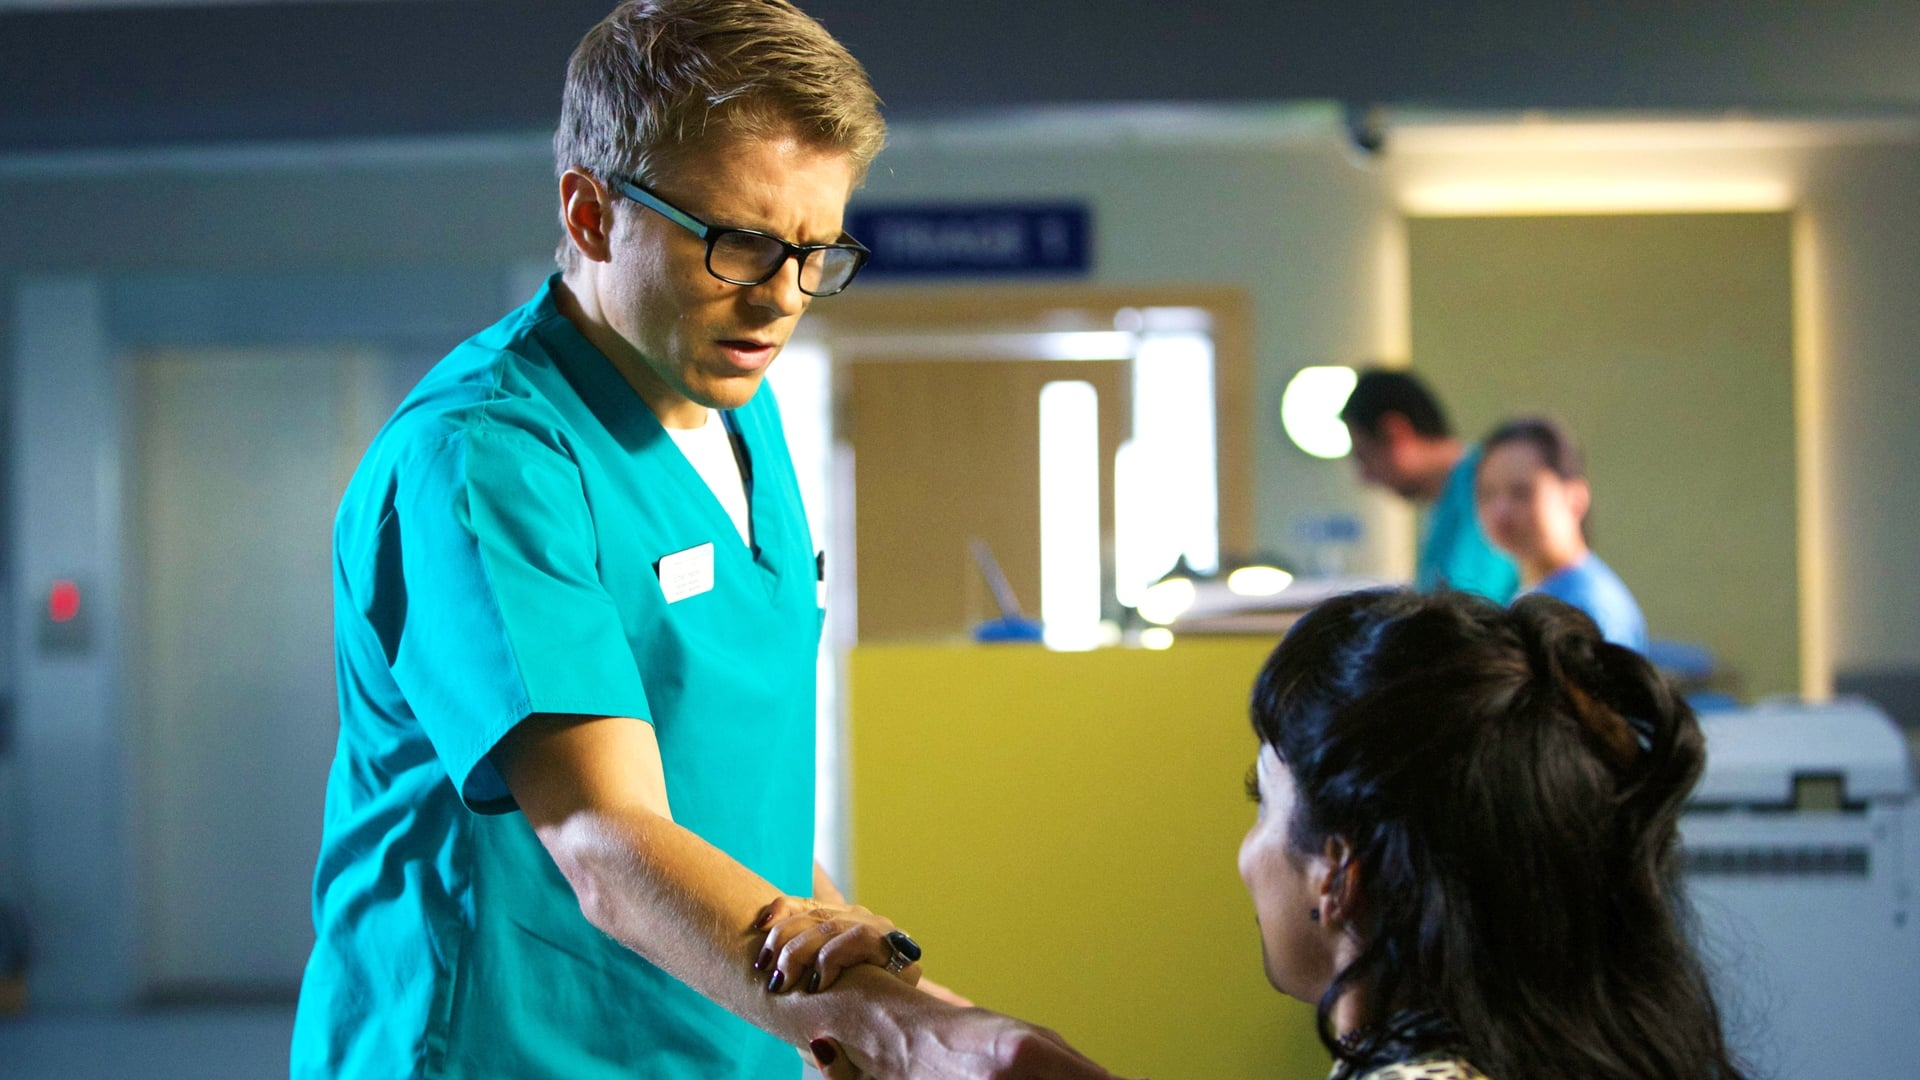 Casualty - Season 29 Episode 39 : Holby Sin City